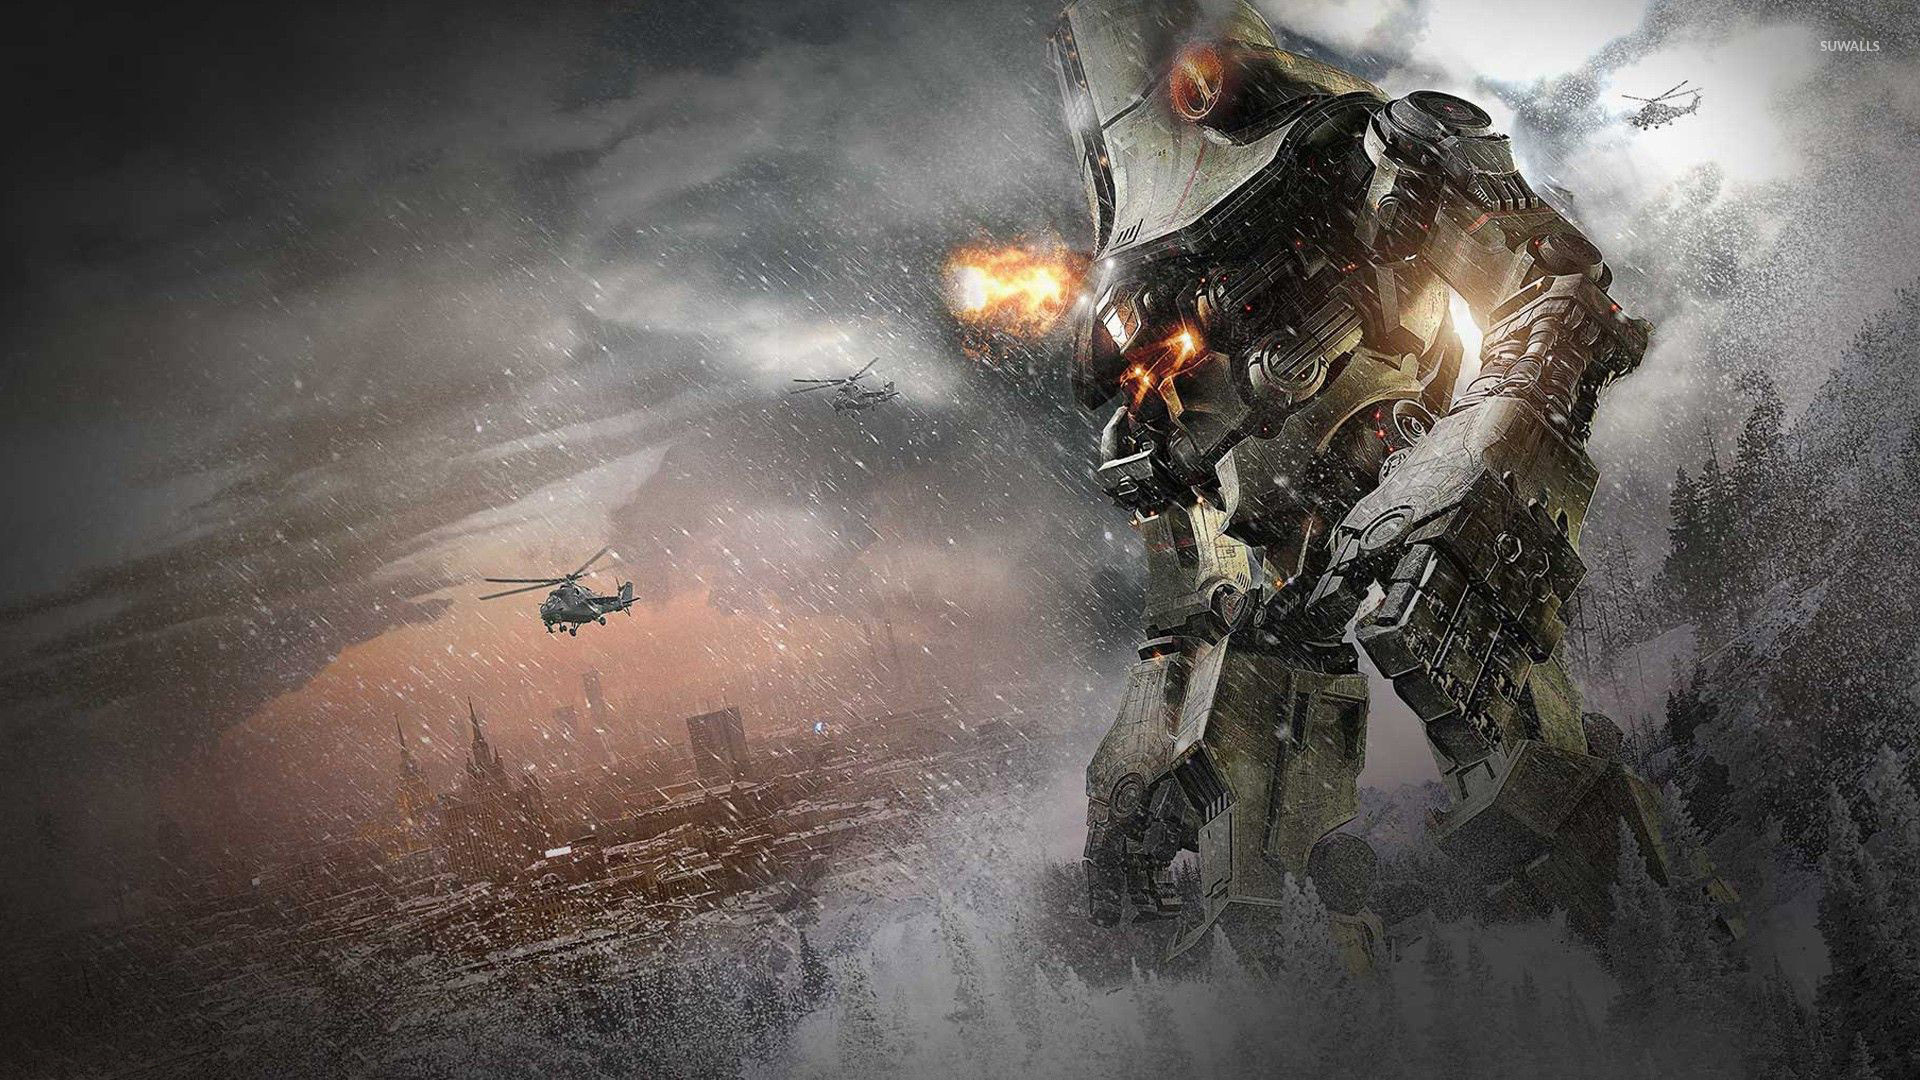 Cherno Alpha - Pacific Rim wallpaper - Movie wallpapers ... Pacific Rim Cherno Alpha Dies